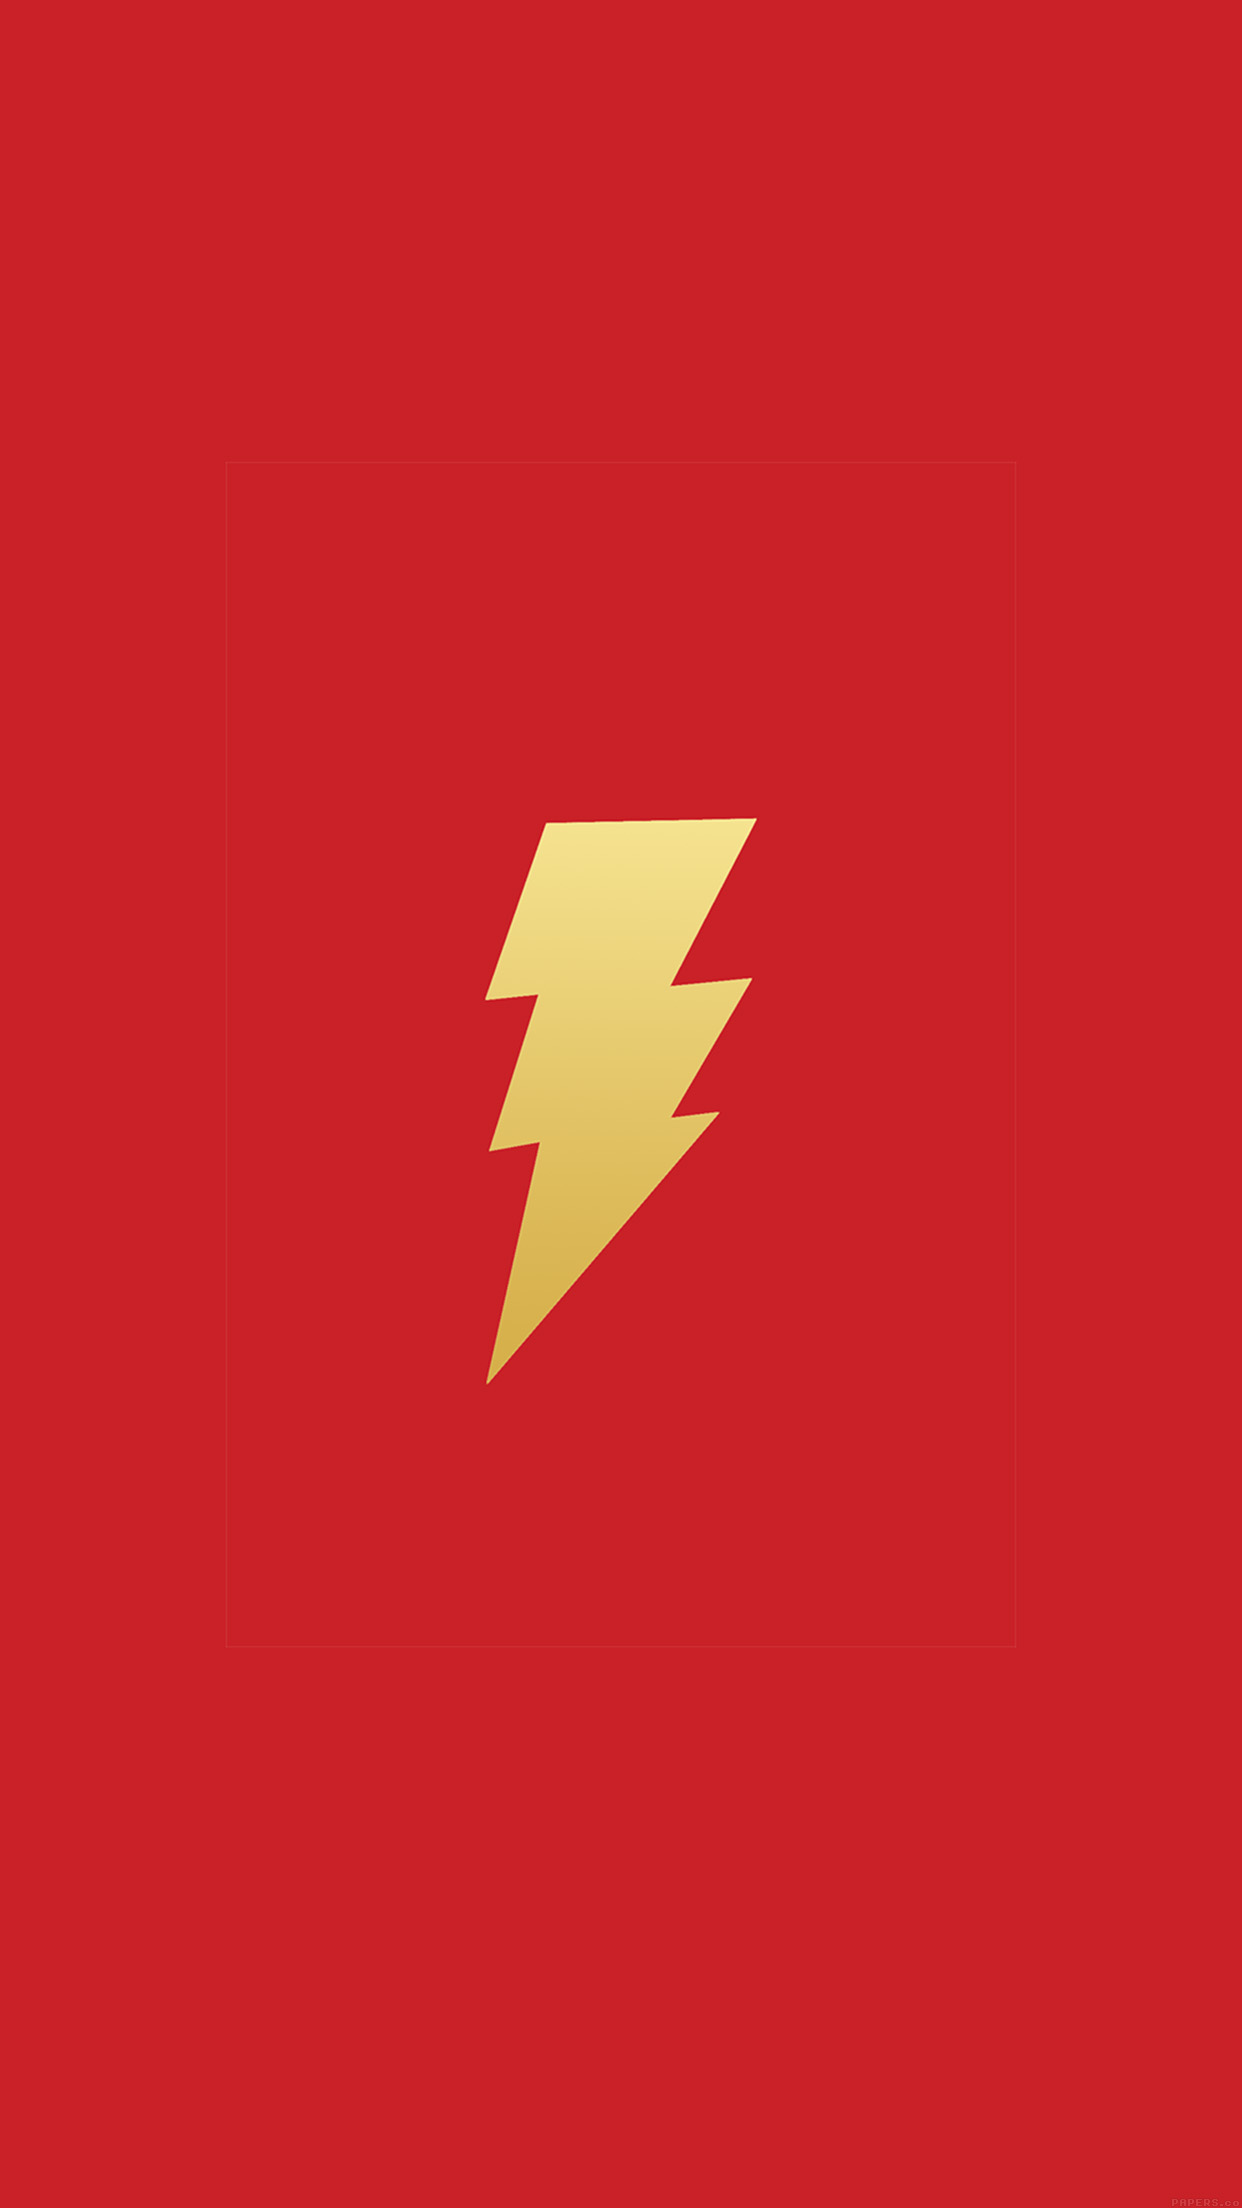 Fall Aesthetic Wallpaper Papers Co Iphone Wallpaper Ah35 Thunder Bolt Minimal